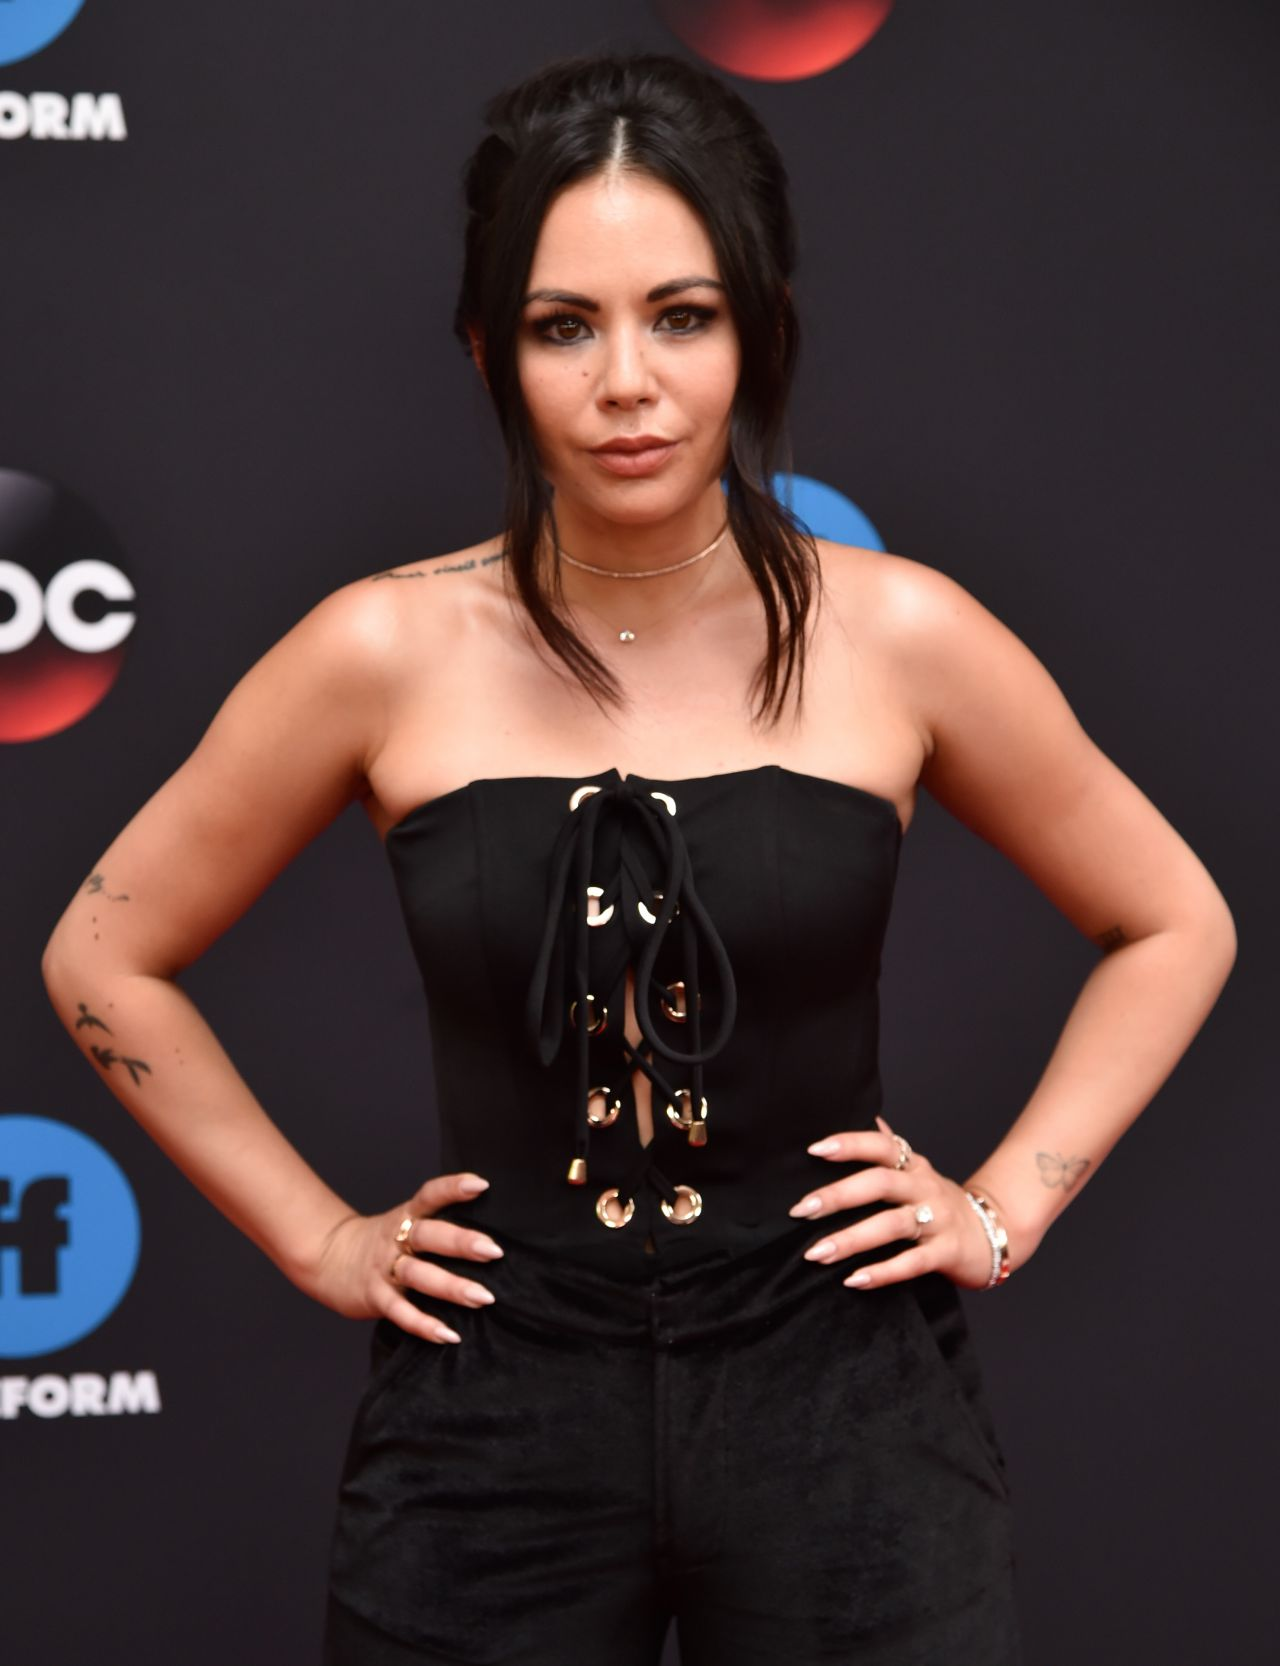 http://celebmafia.com/wp-content/uploads/2018/05/janel-parrish-2018-disney-abc-upfront-presentation-in-new-york-1.jpg